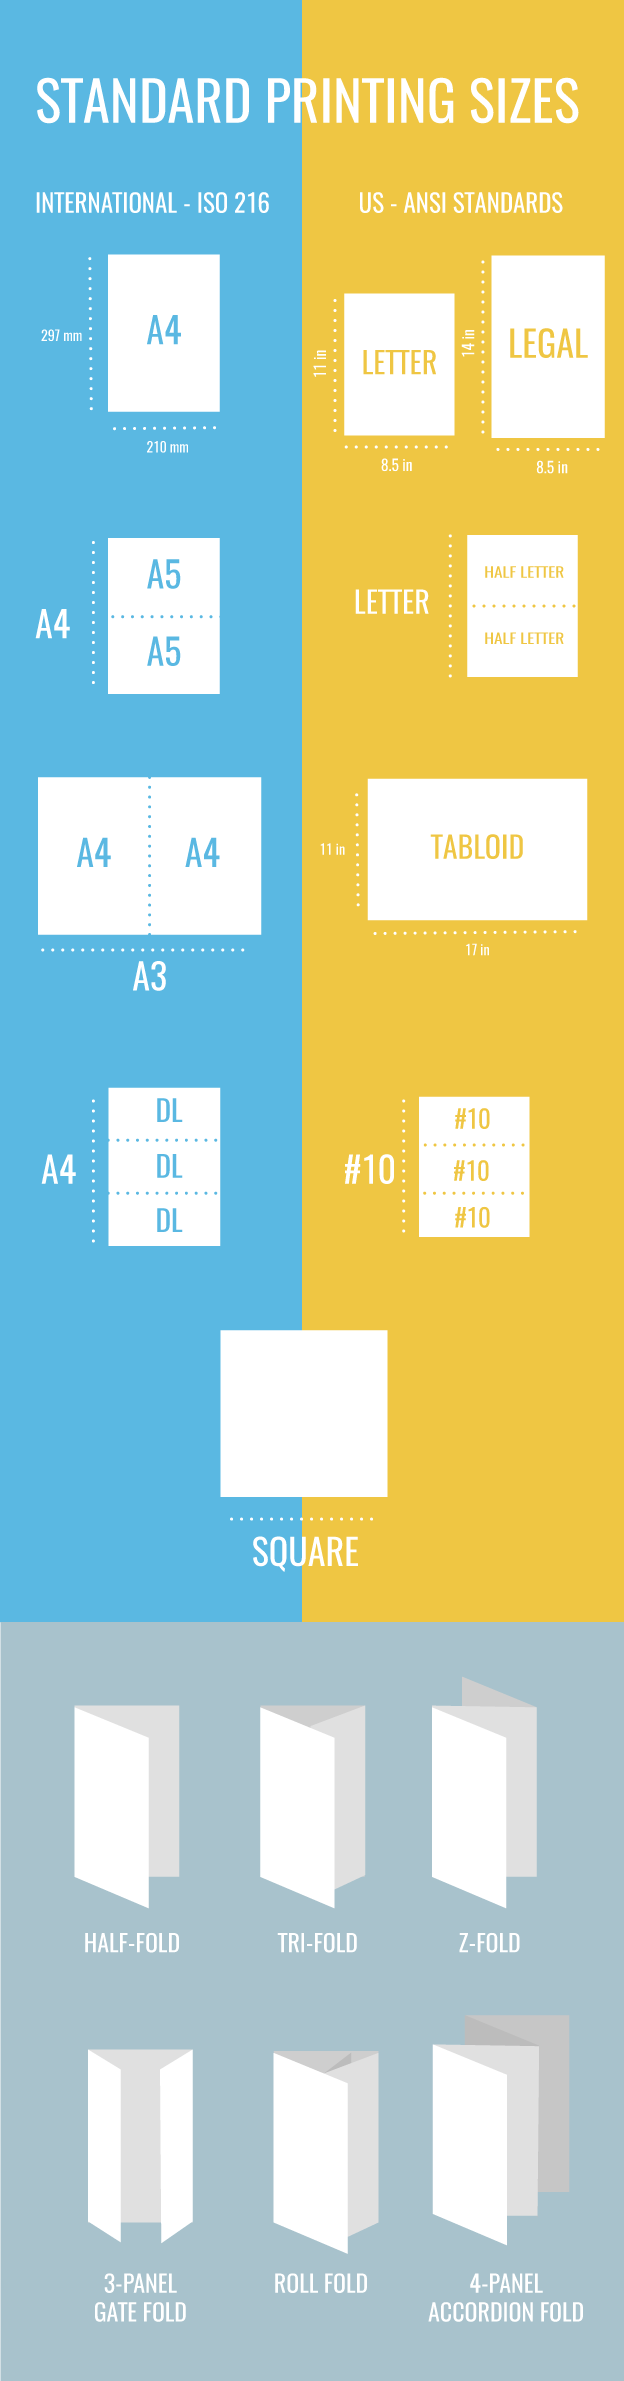 standard brochure sizes for print